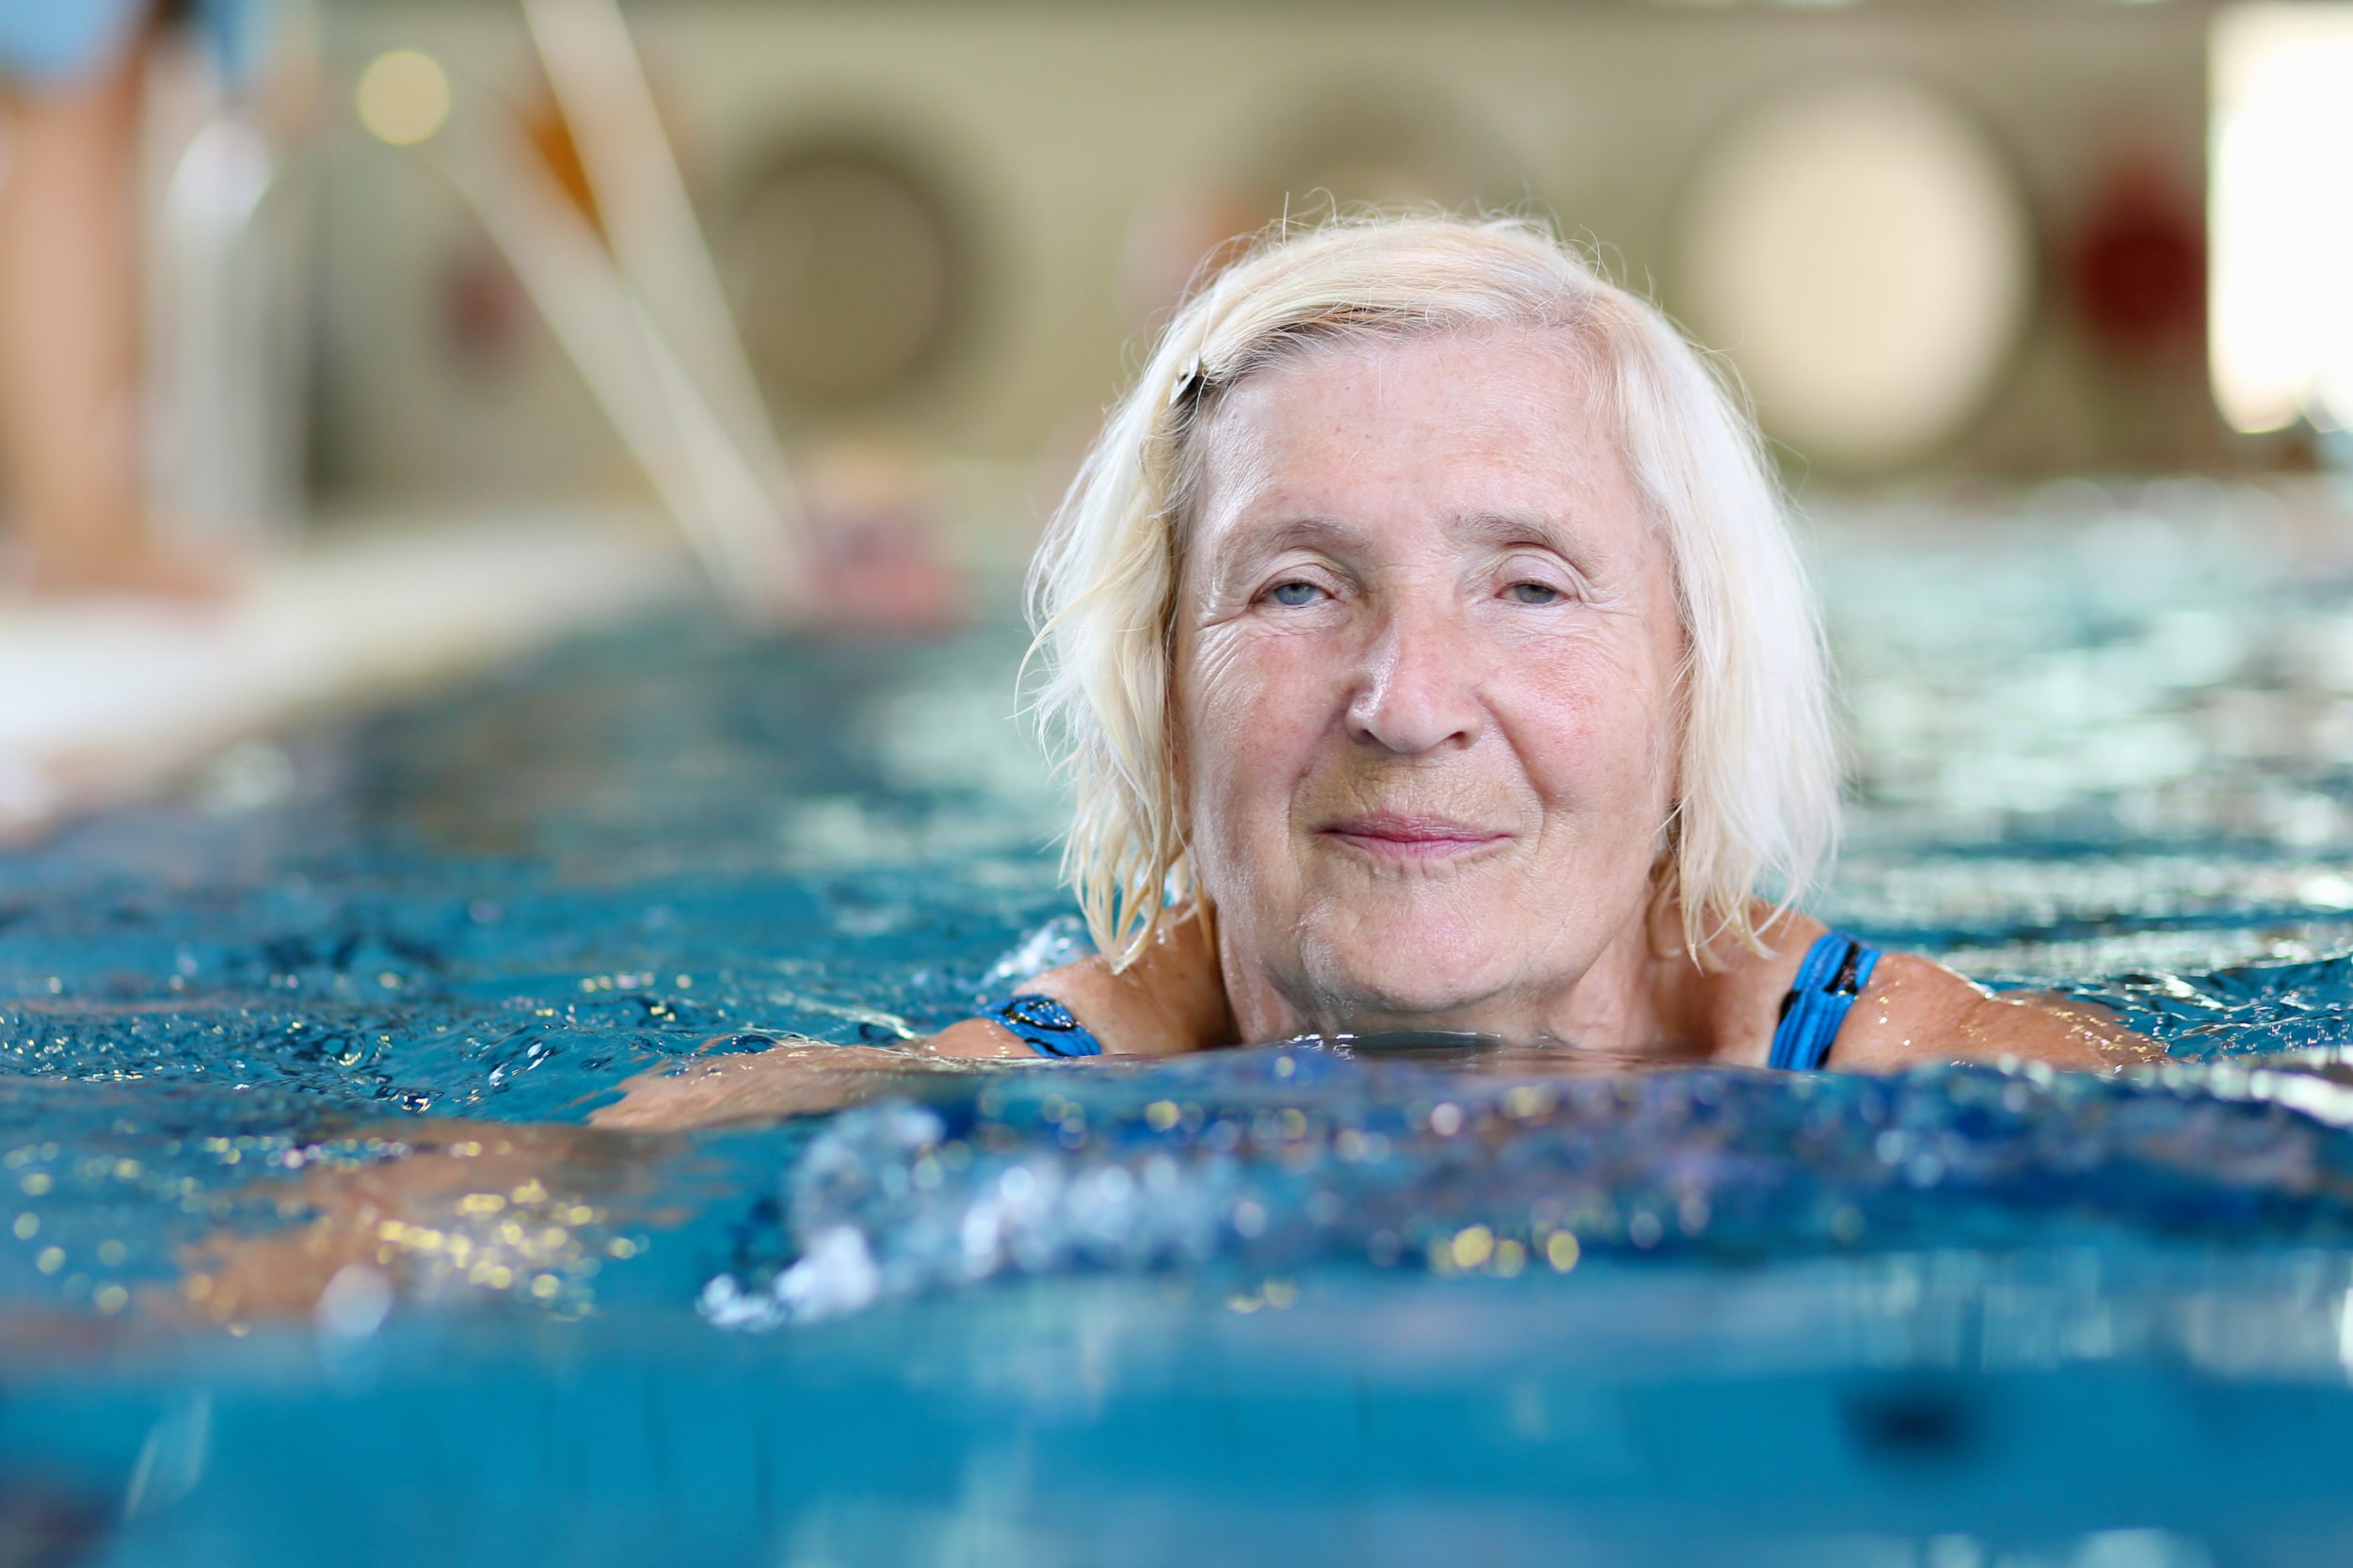 older lady swimming breaststroke with her head above water